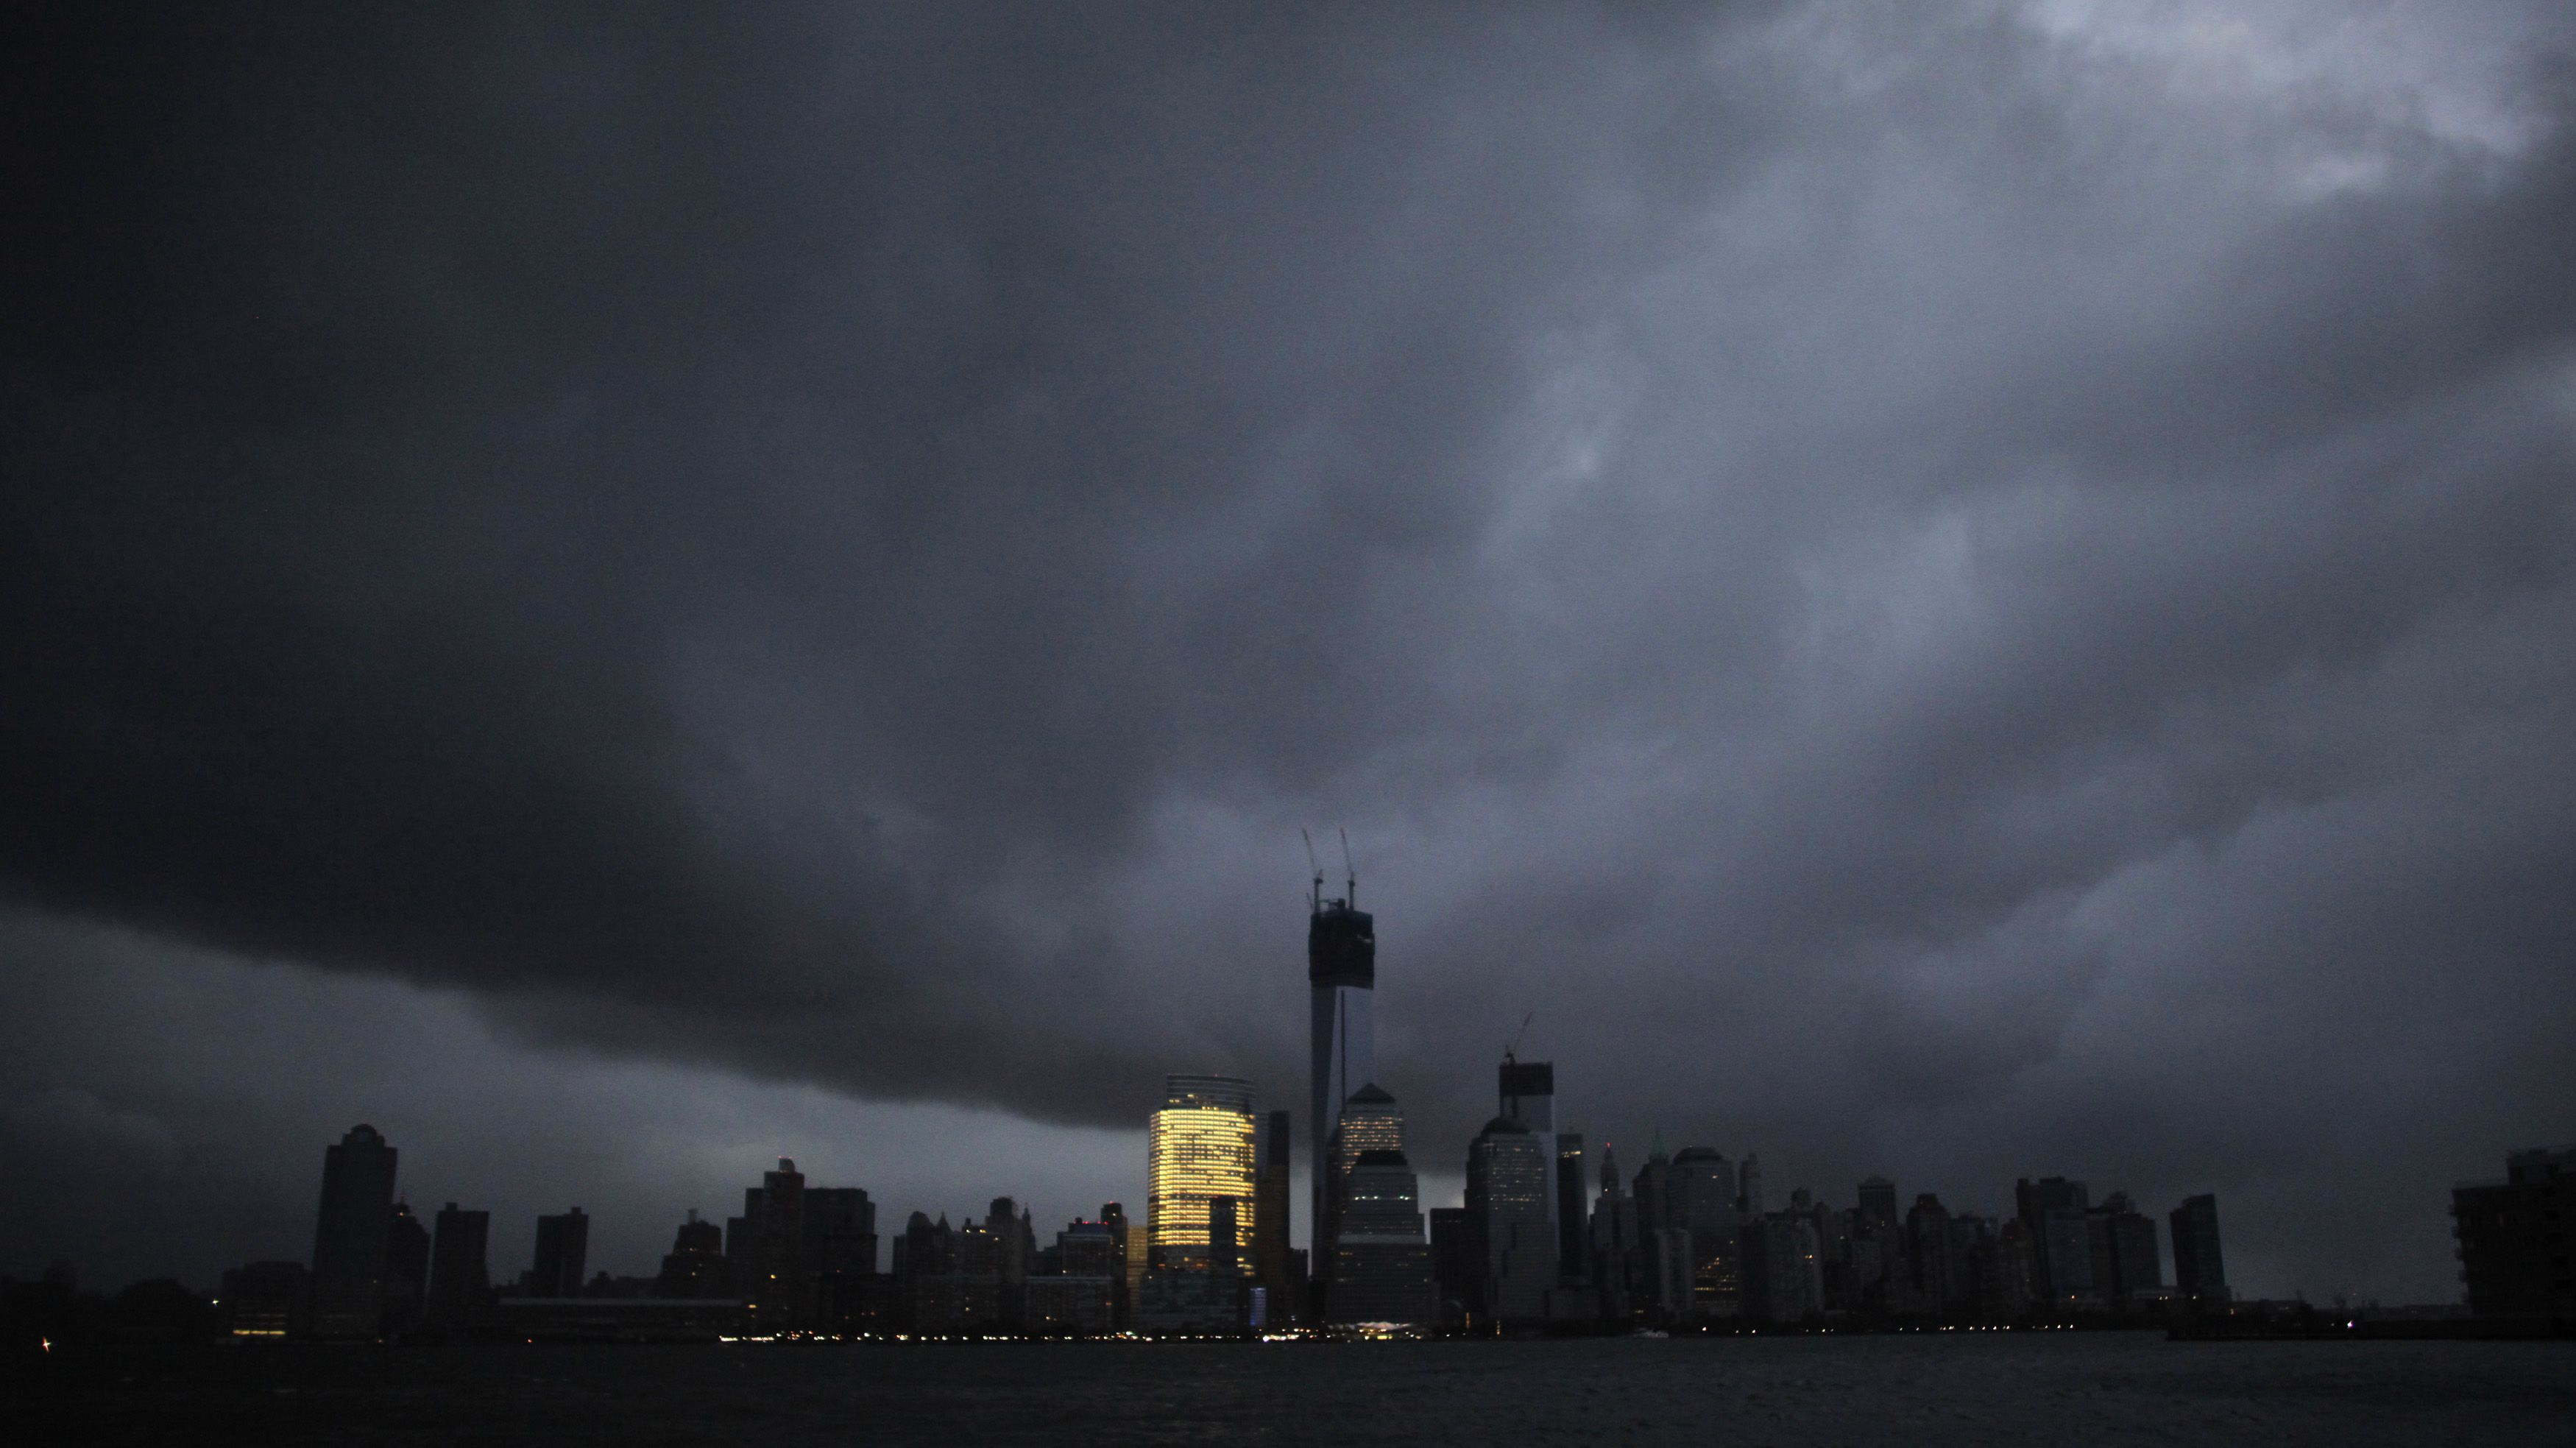 The skyline of lower Manhattan,  as seen from Exchange Place, is mostly in darkness except for the Goldman Sachs building after a preventive power outage caused by giant storm Sandy, in New York October 30, 2012. Millions of people in the eastern United States awoke on Tuesday to flooded homes, fallen trees and widespread power outages caused by Sandy, which swamped New York City's subway system and submerged streets in Manhattan's financial district. More than two-thirds of the U.S. East Coast's refining capacity was shut down and fuel pipelines idled due to Hurricane Sandy. Early assessments show the region's biggest plants may have escaped without major damage. REUTERS/Eduardo Munoz (UNITED STATES - Tags: ENVIRONMENT DISASTER ENERGY CITYSPACE TPX IMAGES OF THE DAY) FOR BEST QUALITY IMAGE ALSO SEE: GM1E8BU19QD01.  FOR EDITORIAL USE ONLY. NO COMMERCIAL SALES WORLDWIDE UNTIL JANUARY 7, 2018. FOR MORE INFORMATION, PLEASE CONTACT YOUR CONTACT YOUR LOCAL SALES REPRESENTATIVEî. - RTR39RLY